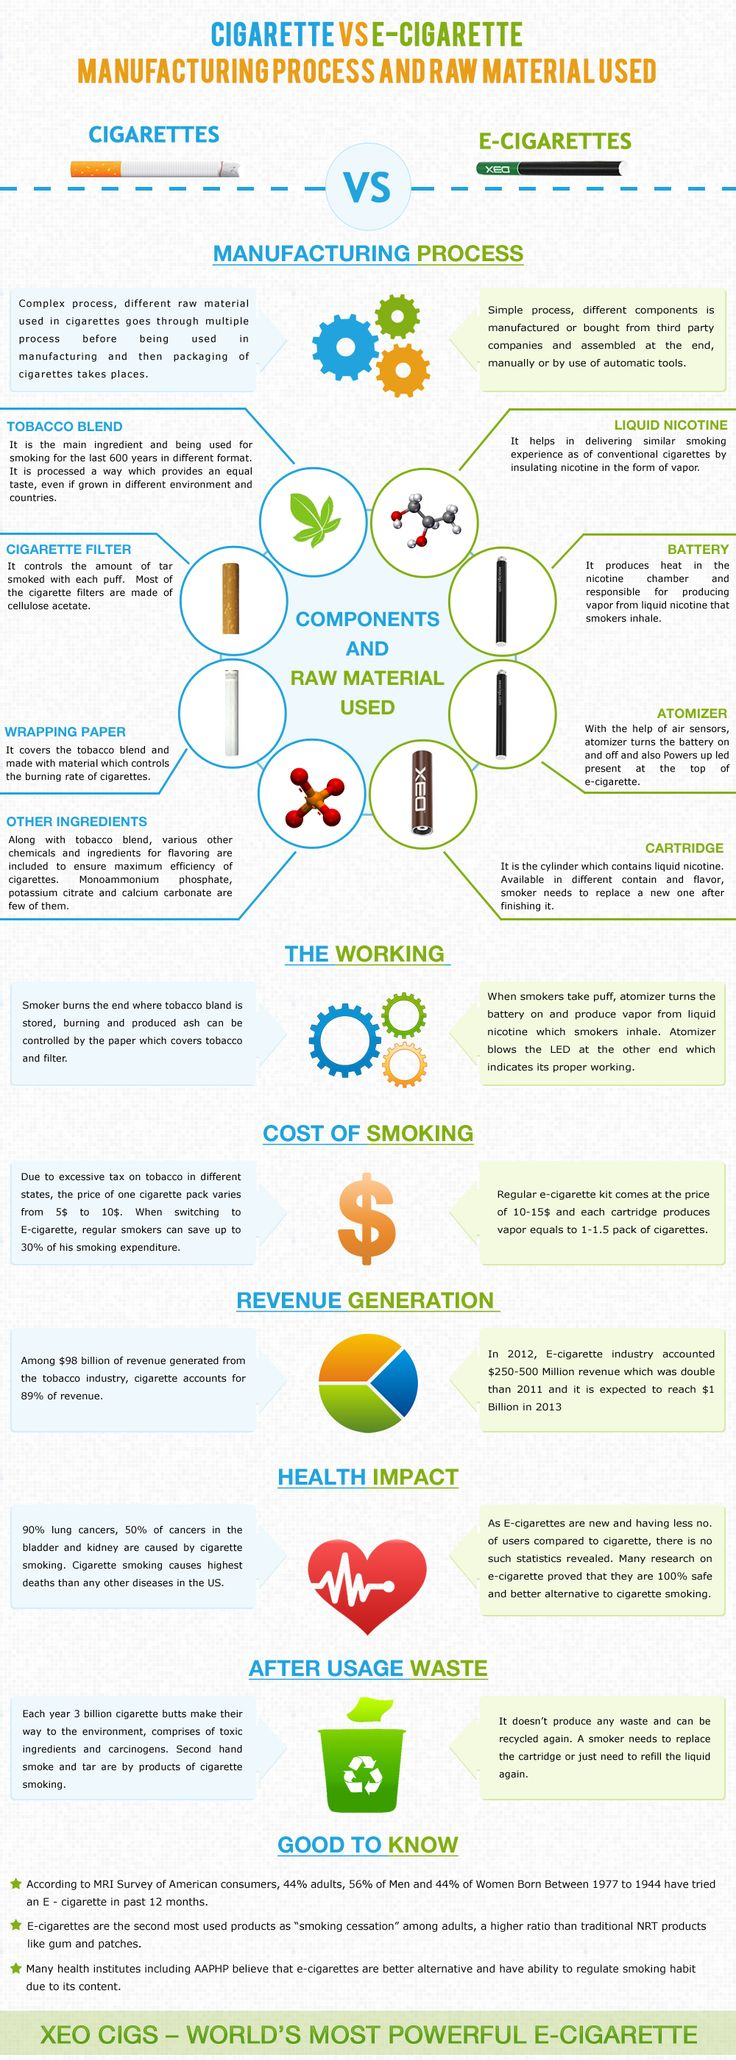 A detail overview of the raw material used in manufacturing of cigarettes and e-cigarettes.